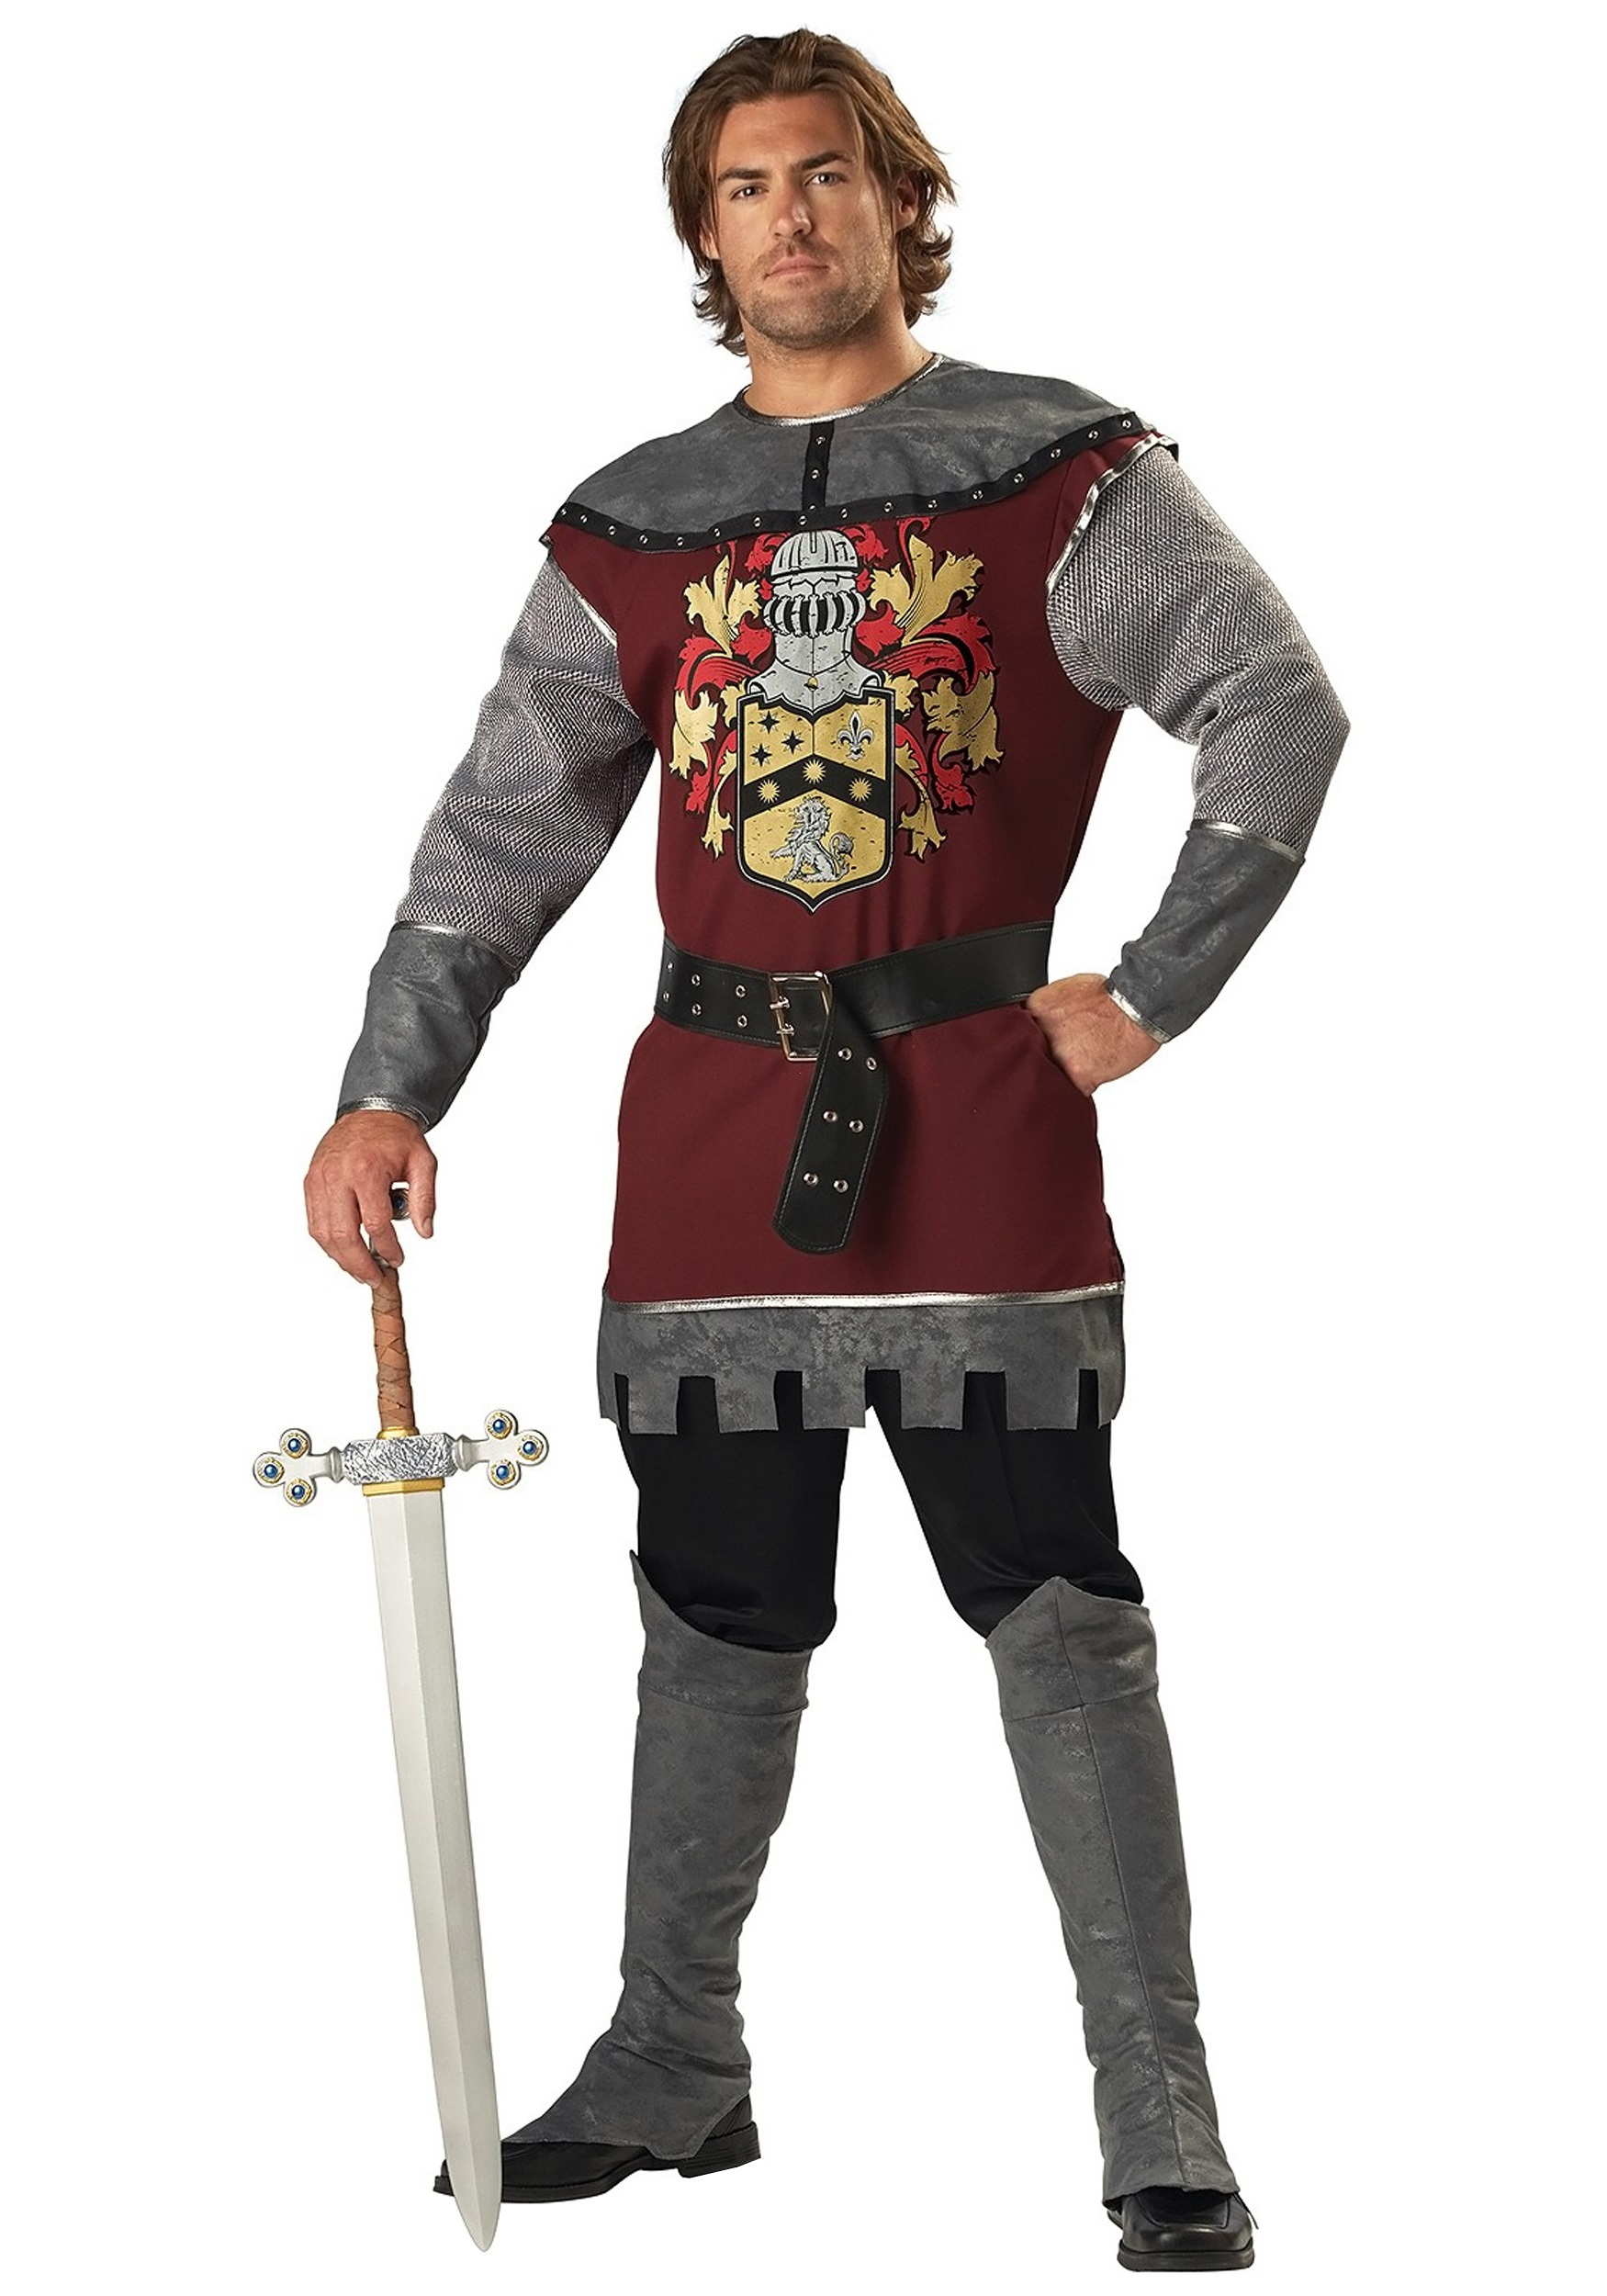 noble royal knight costume medieval costumes for men